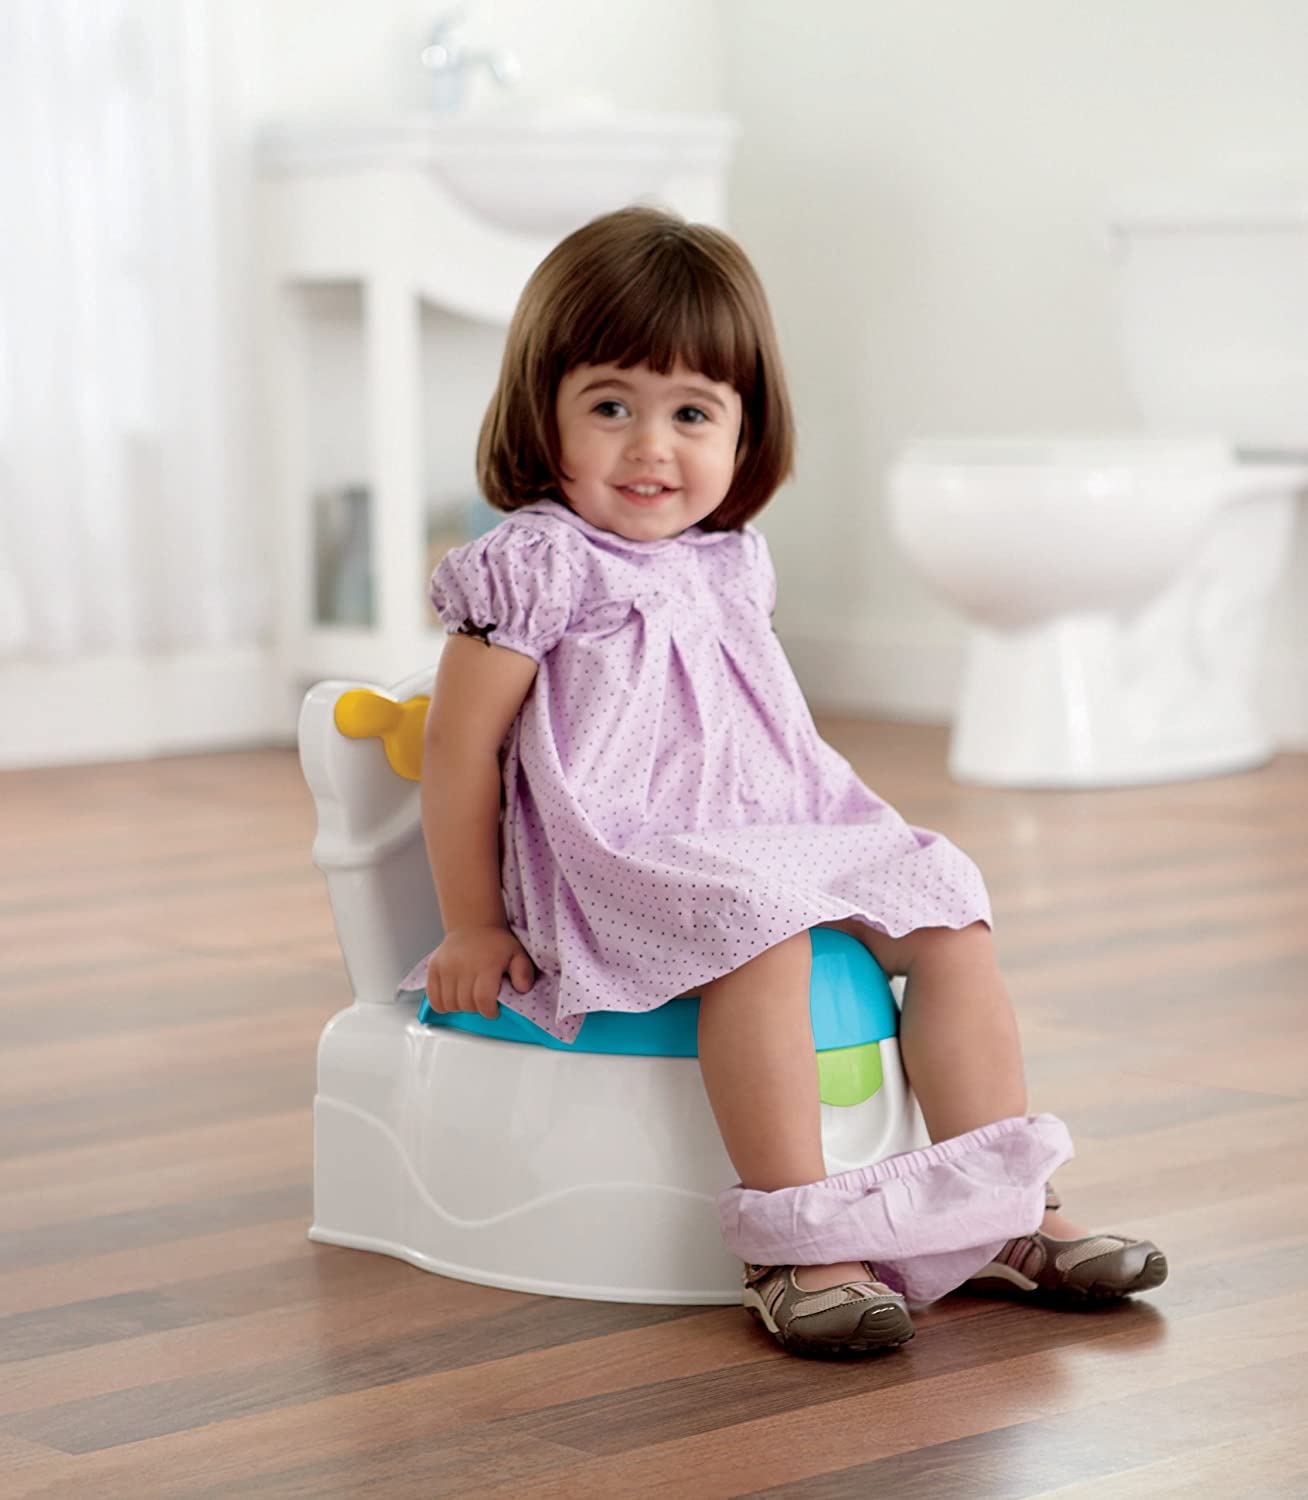 Fisher Price Potty Training Chair Kids Toddler Toilet Seat